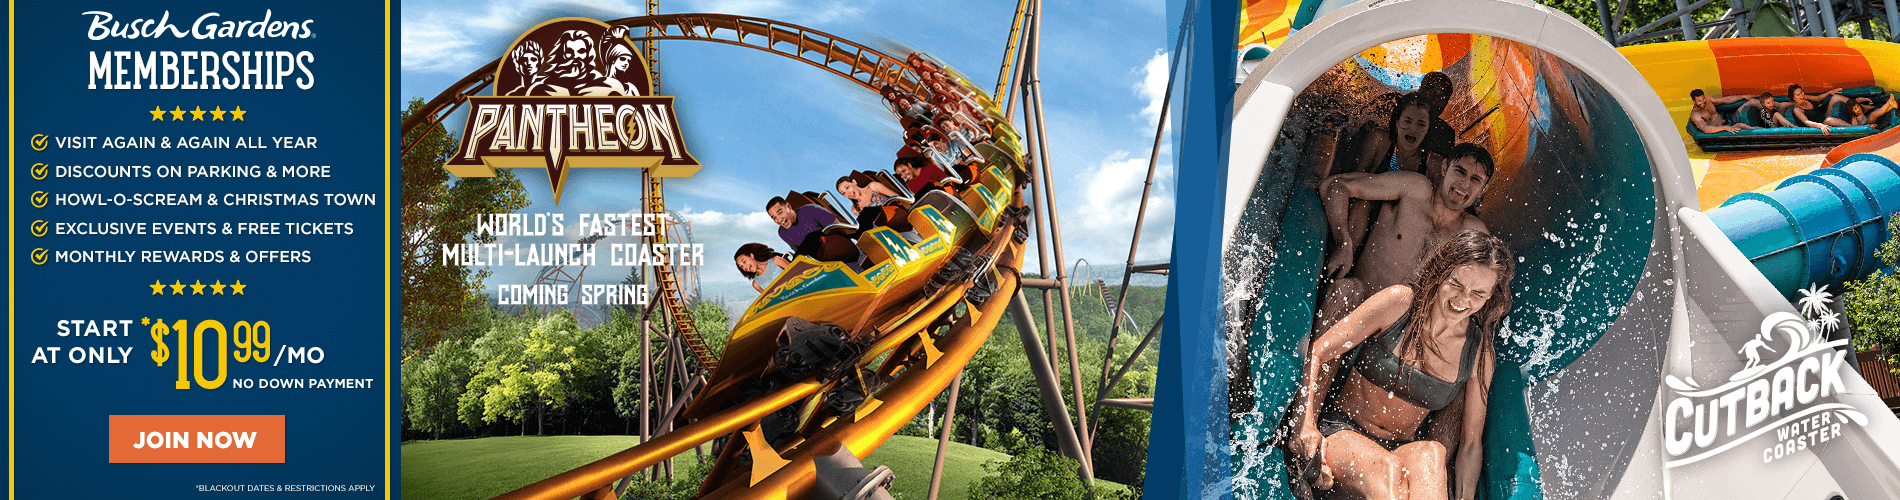 Busch Gardens Wiliamsburg Membership Plans starting at $10.99/month.